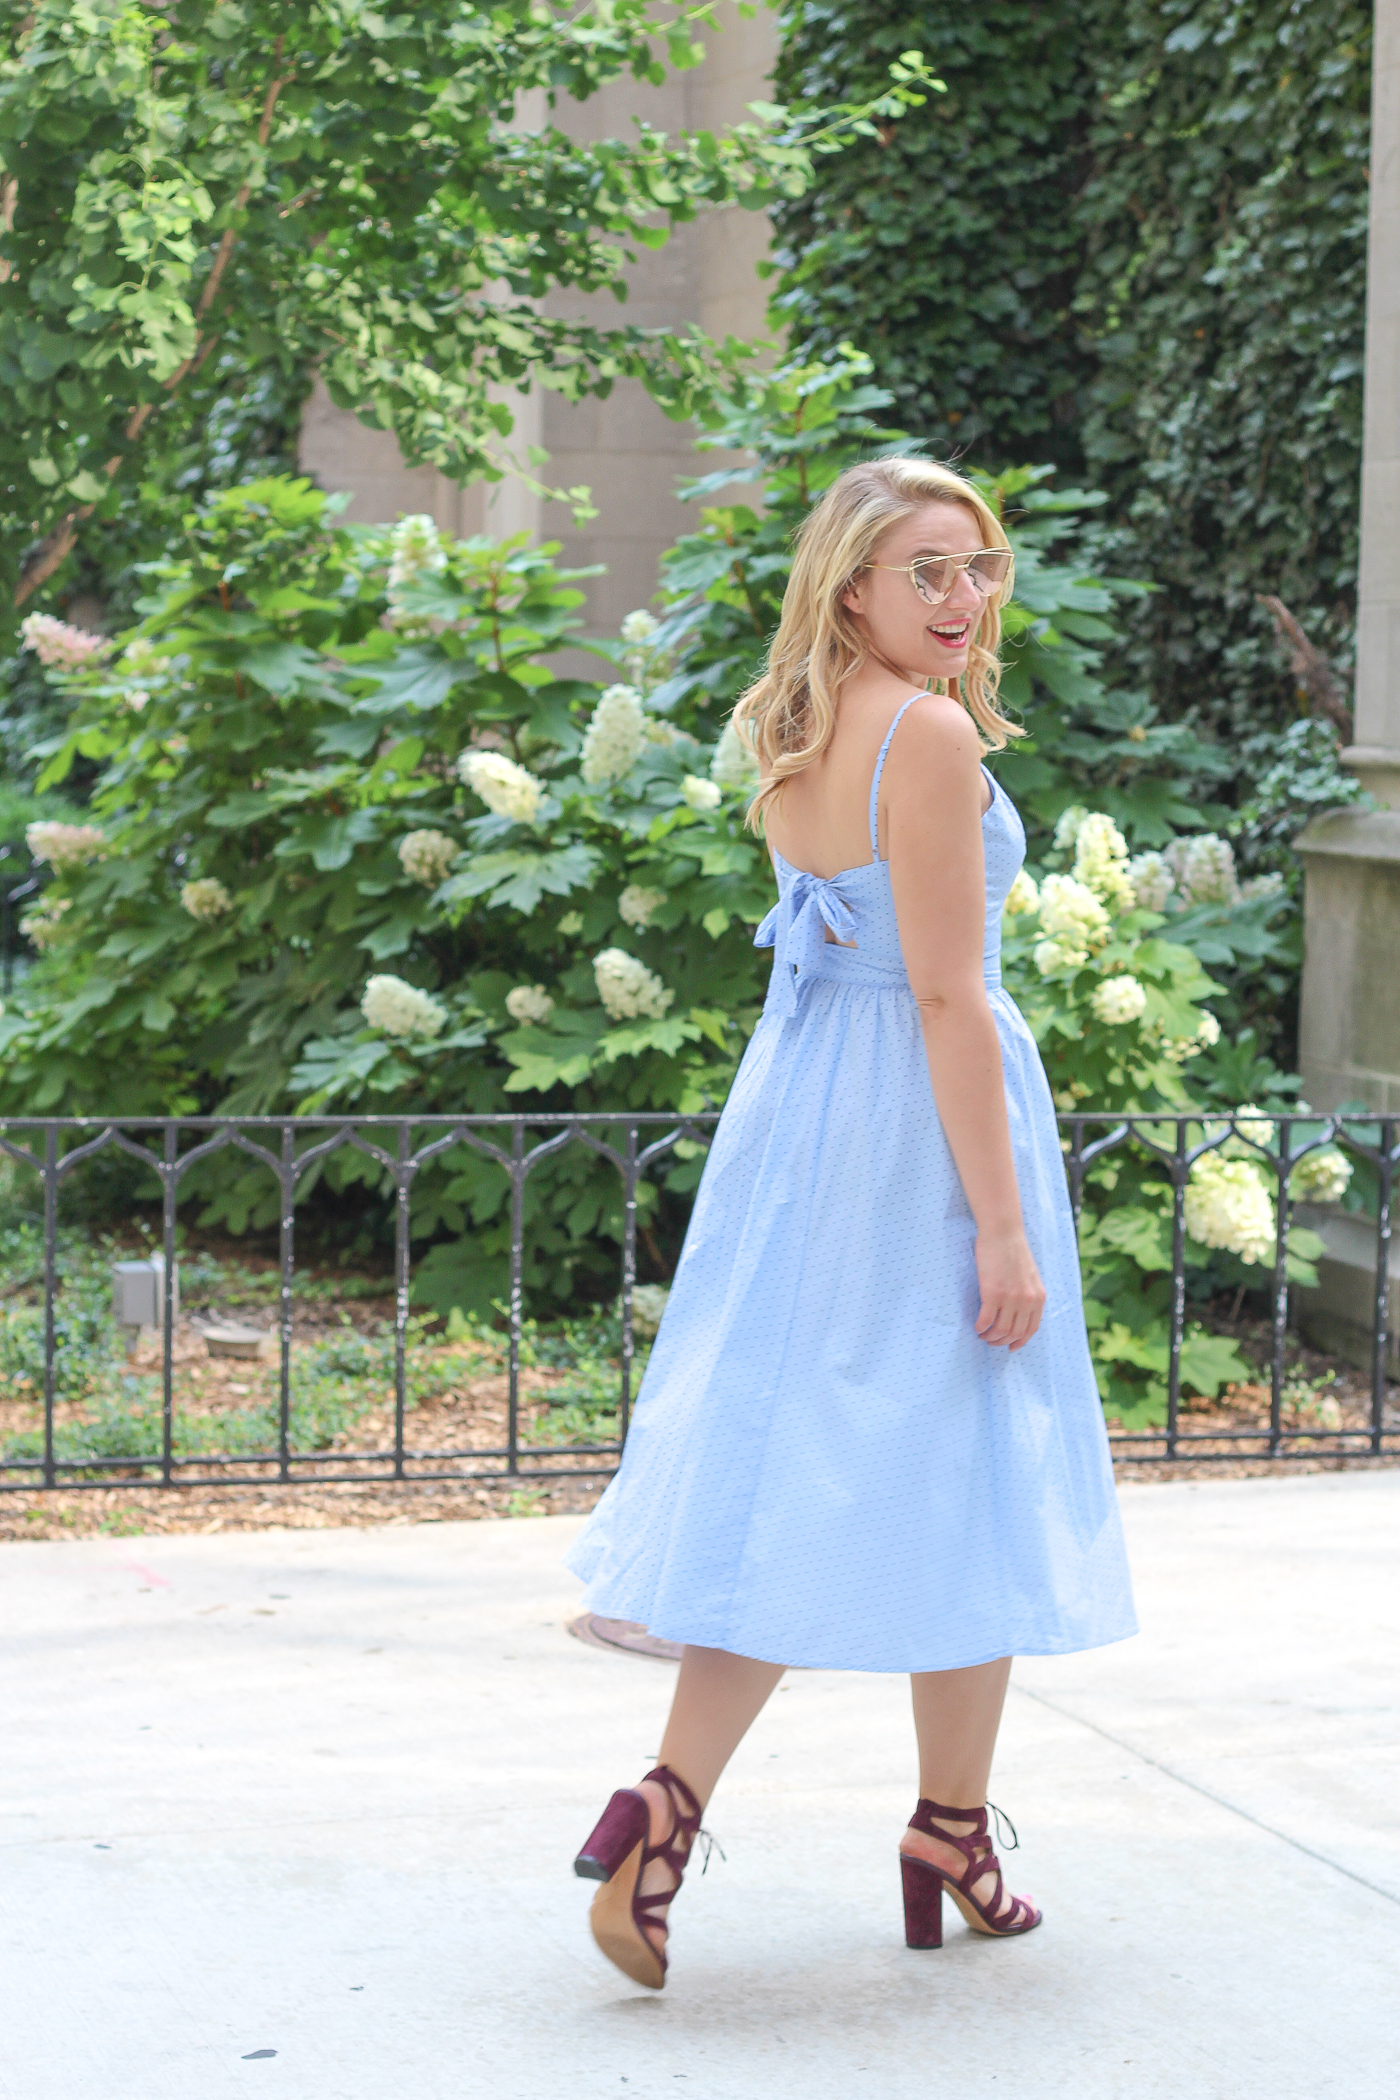 How to wear a classic sweetheart cotton dress for movies at the park